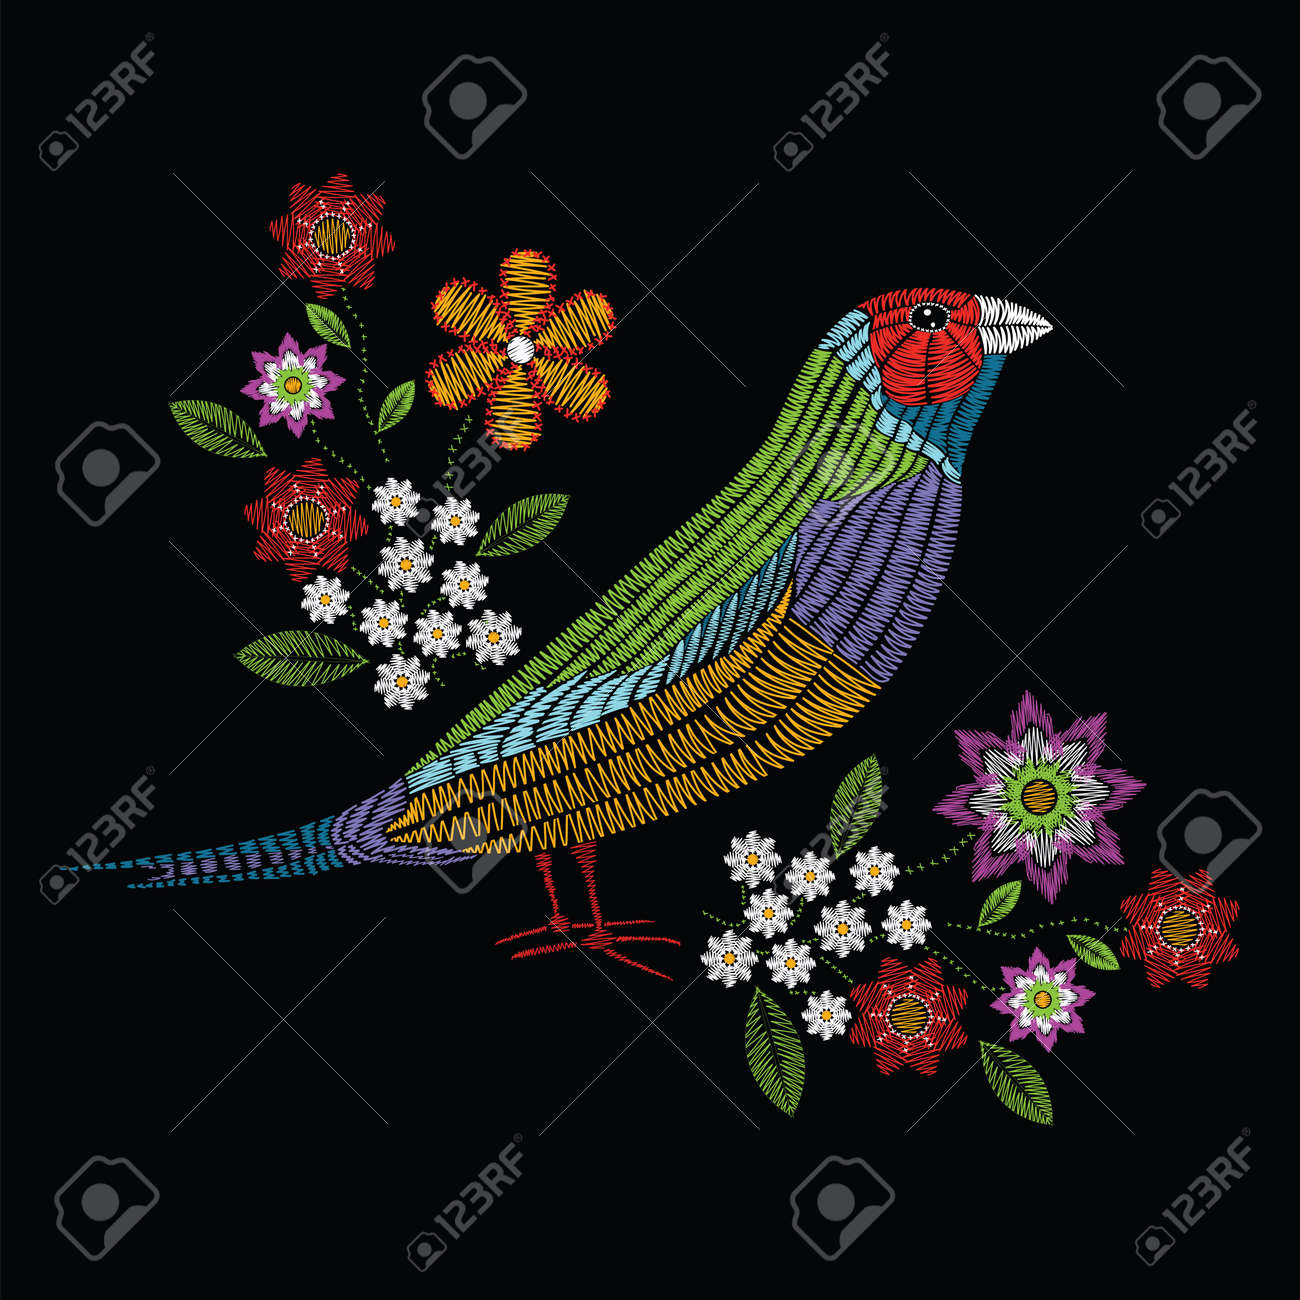 Vector illustration embroidery stitches with gouldian finch, chamomile wildflowers, spring flowers, branches in color. Fashion ornament on black background for textile and fabric traditional floral decoration. Hand drawn illustration. Print for textile an - 80436822